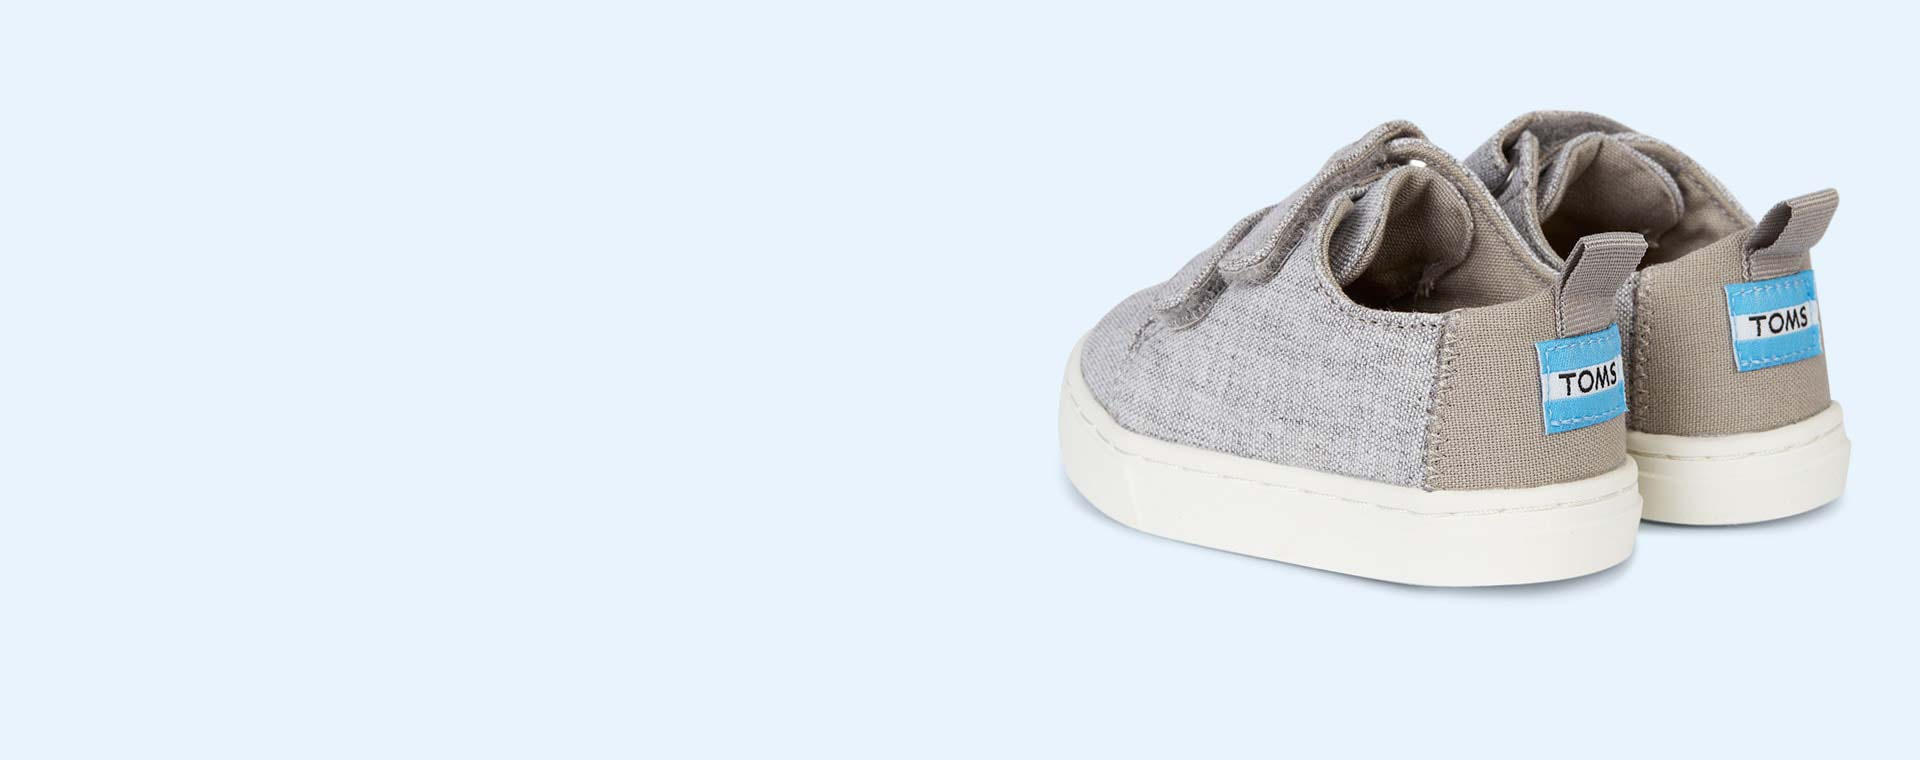 Chambray TOMS Lenny Sneakers